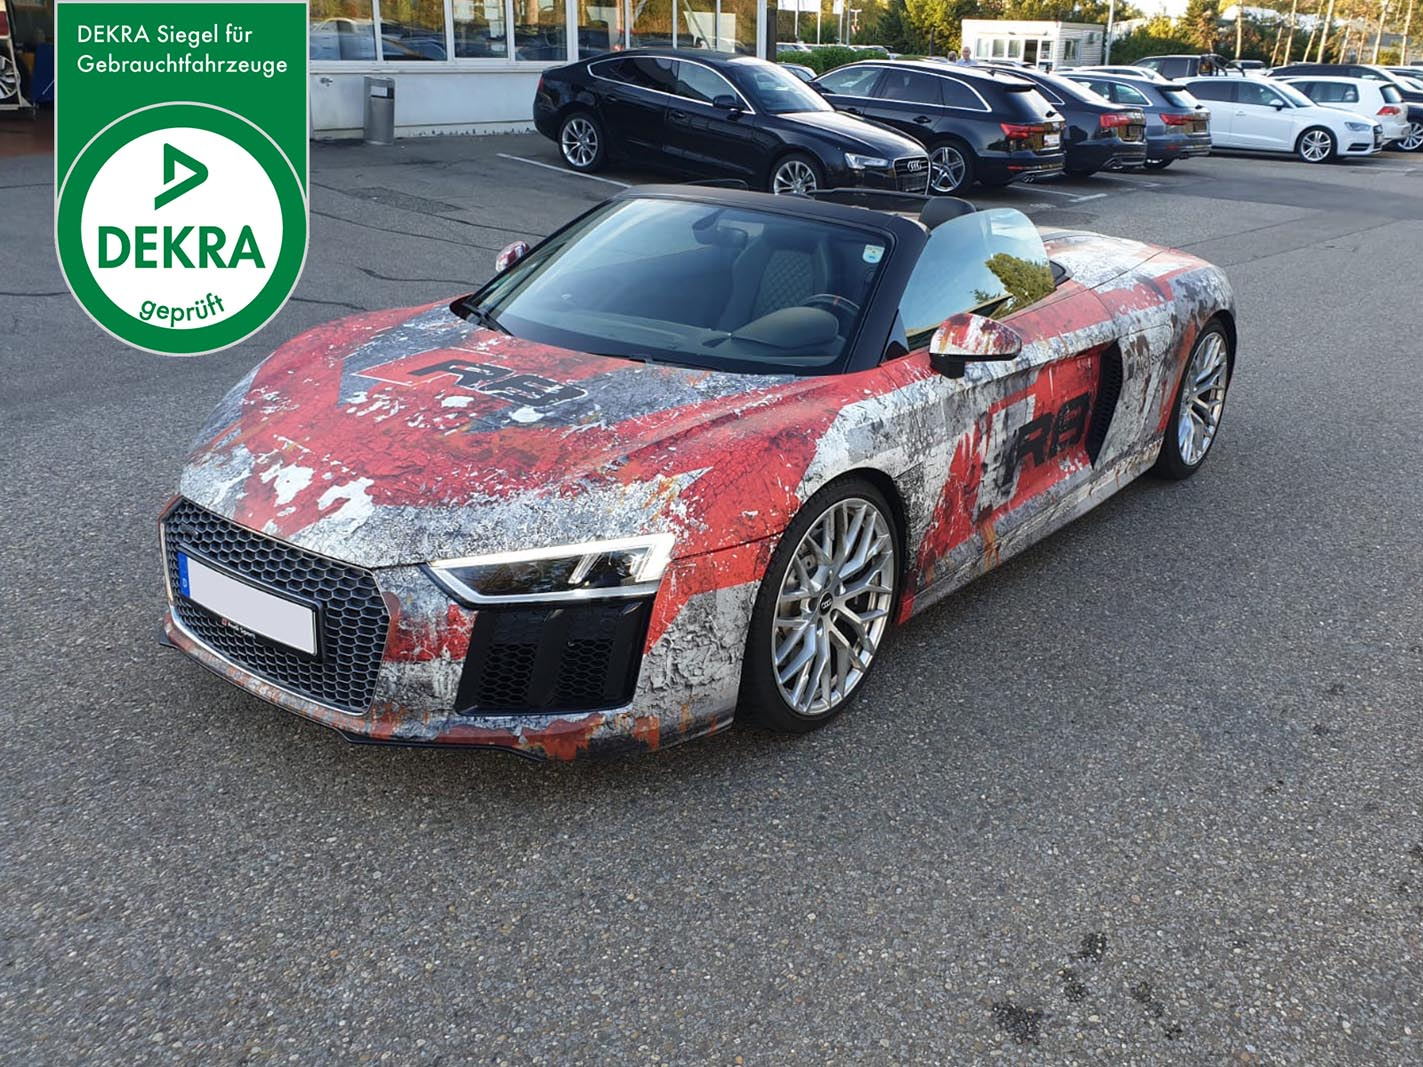 audi_r8_sypder_rot_schwarz_AUD-4211_1